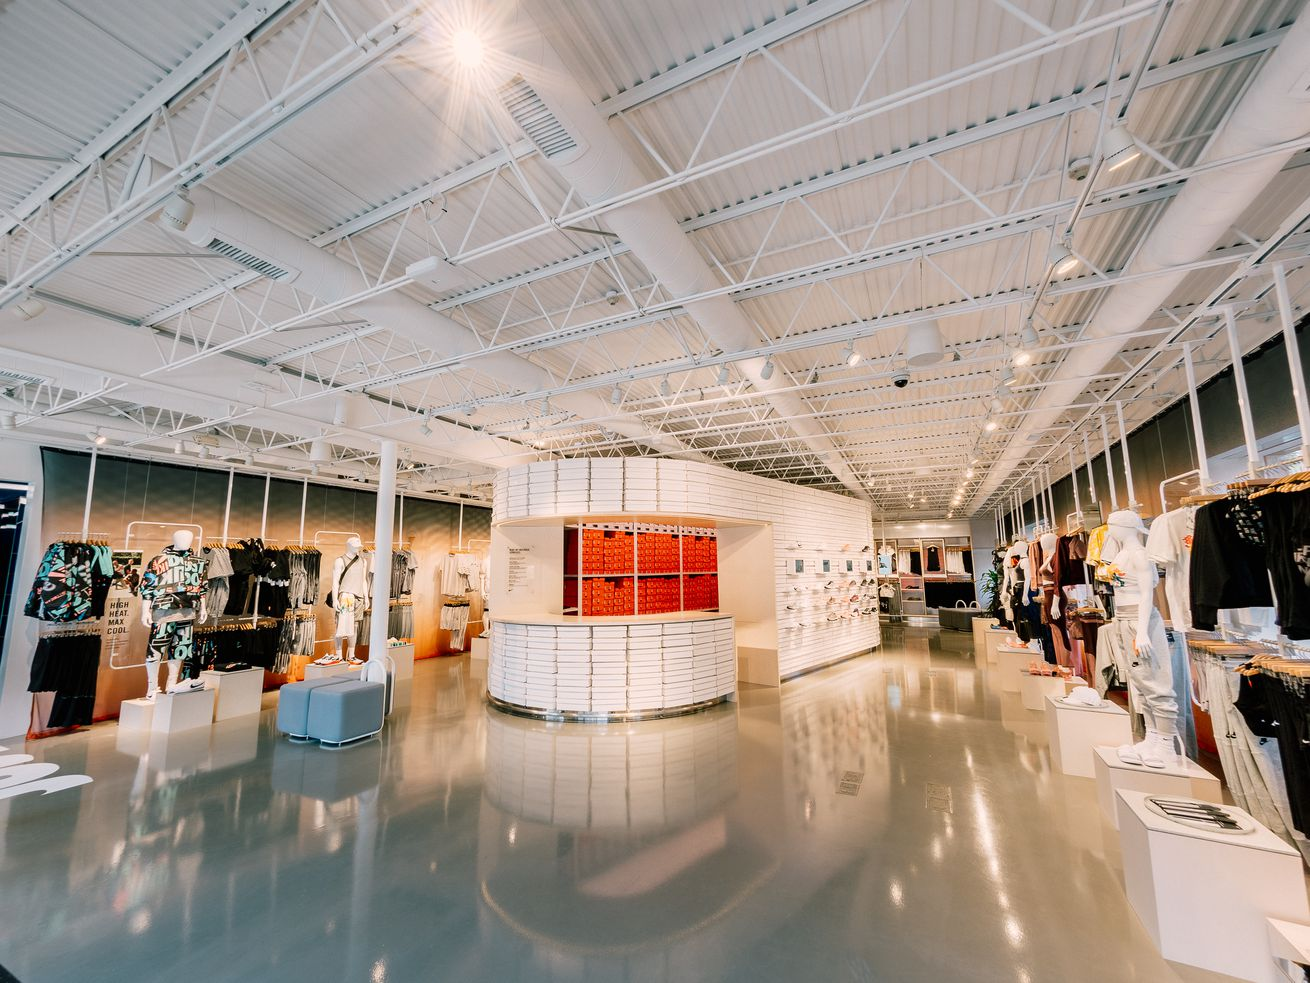 The inside of Nike's new live concept store, Nike by Melrose.